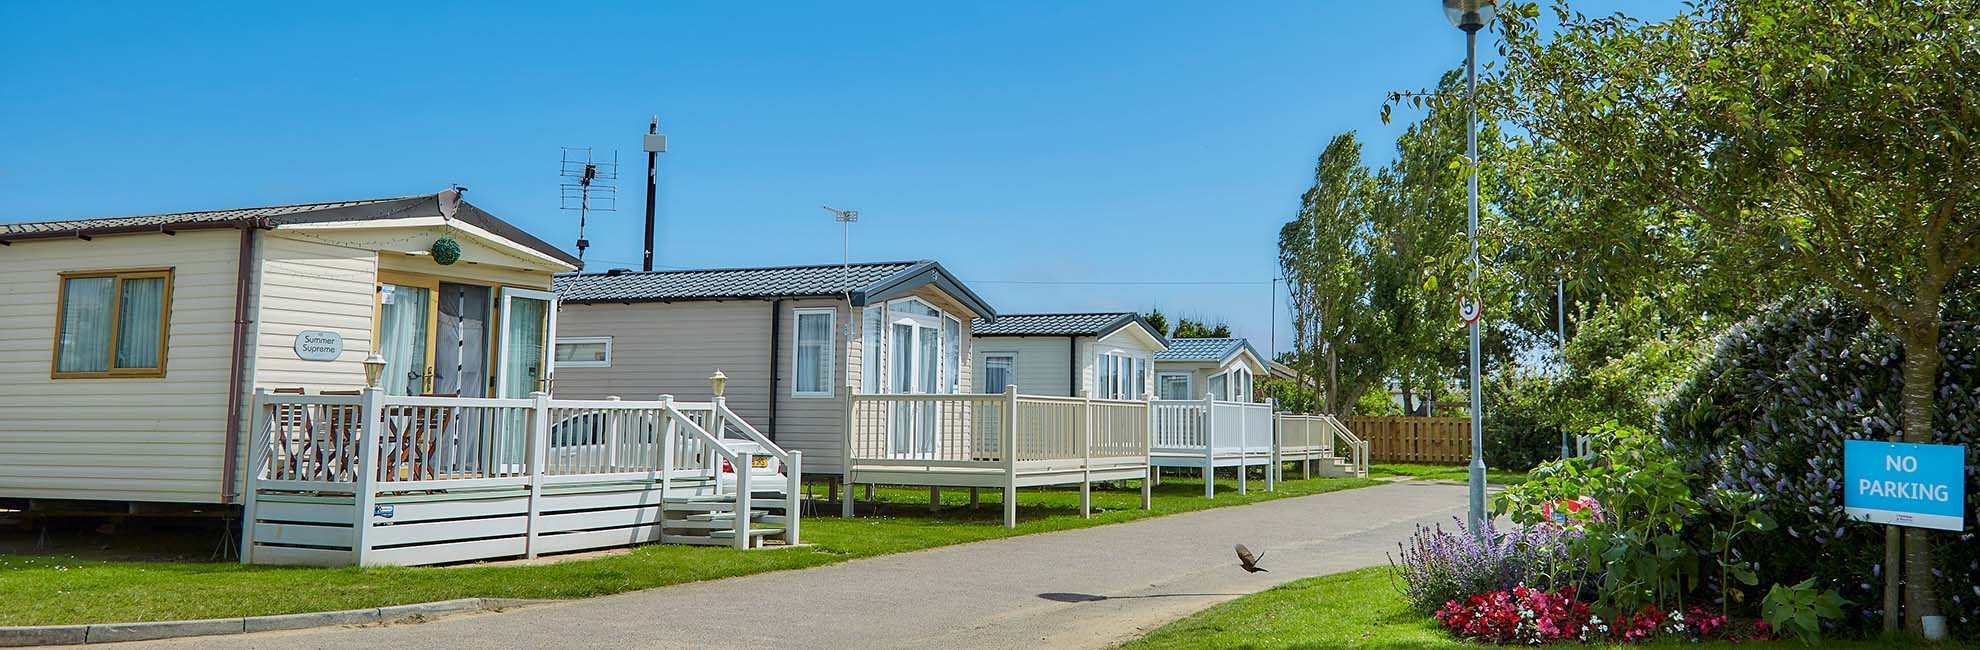 A family walking past the caravans at California Cliffs Holiday Park